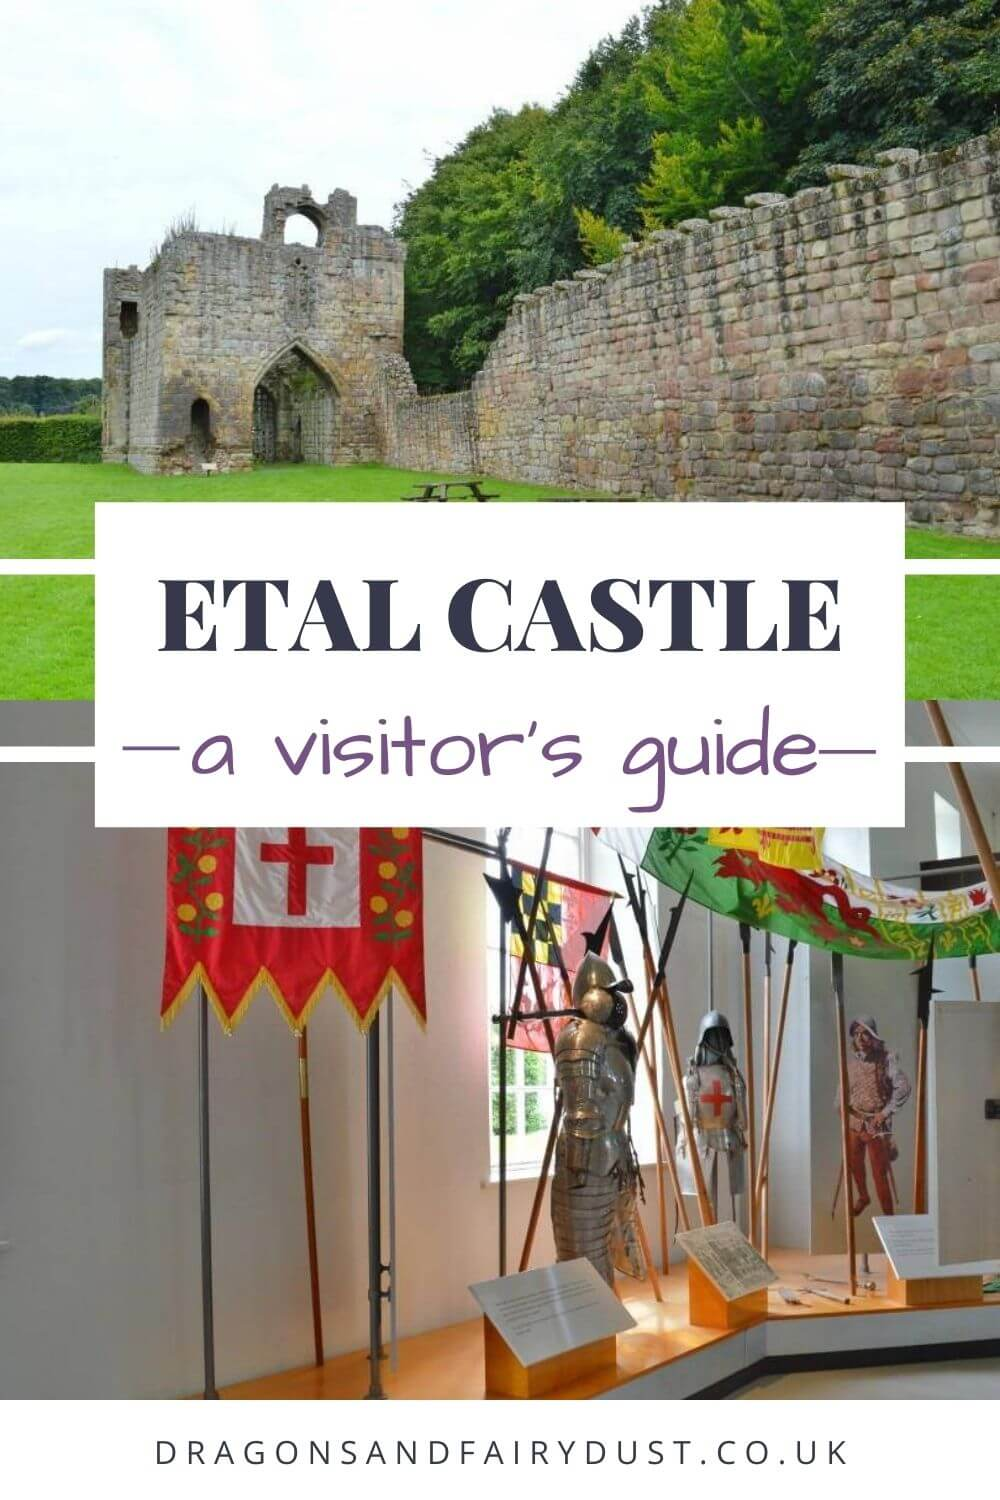 Etal Castle is a medieval stronghold in the village of Etal, Northumberland. Discover what you will find there.